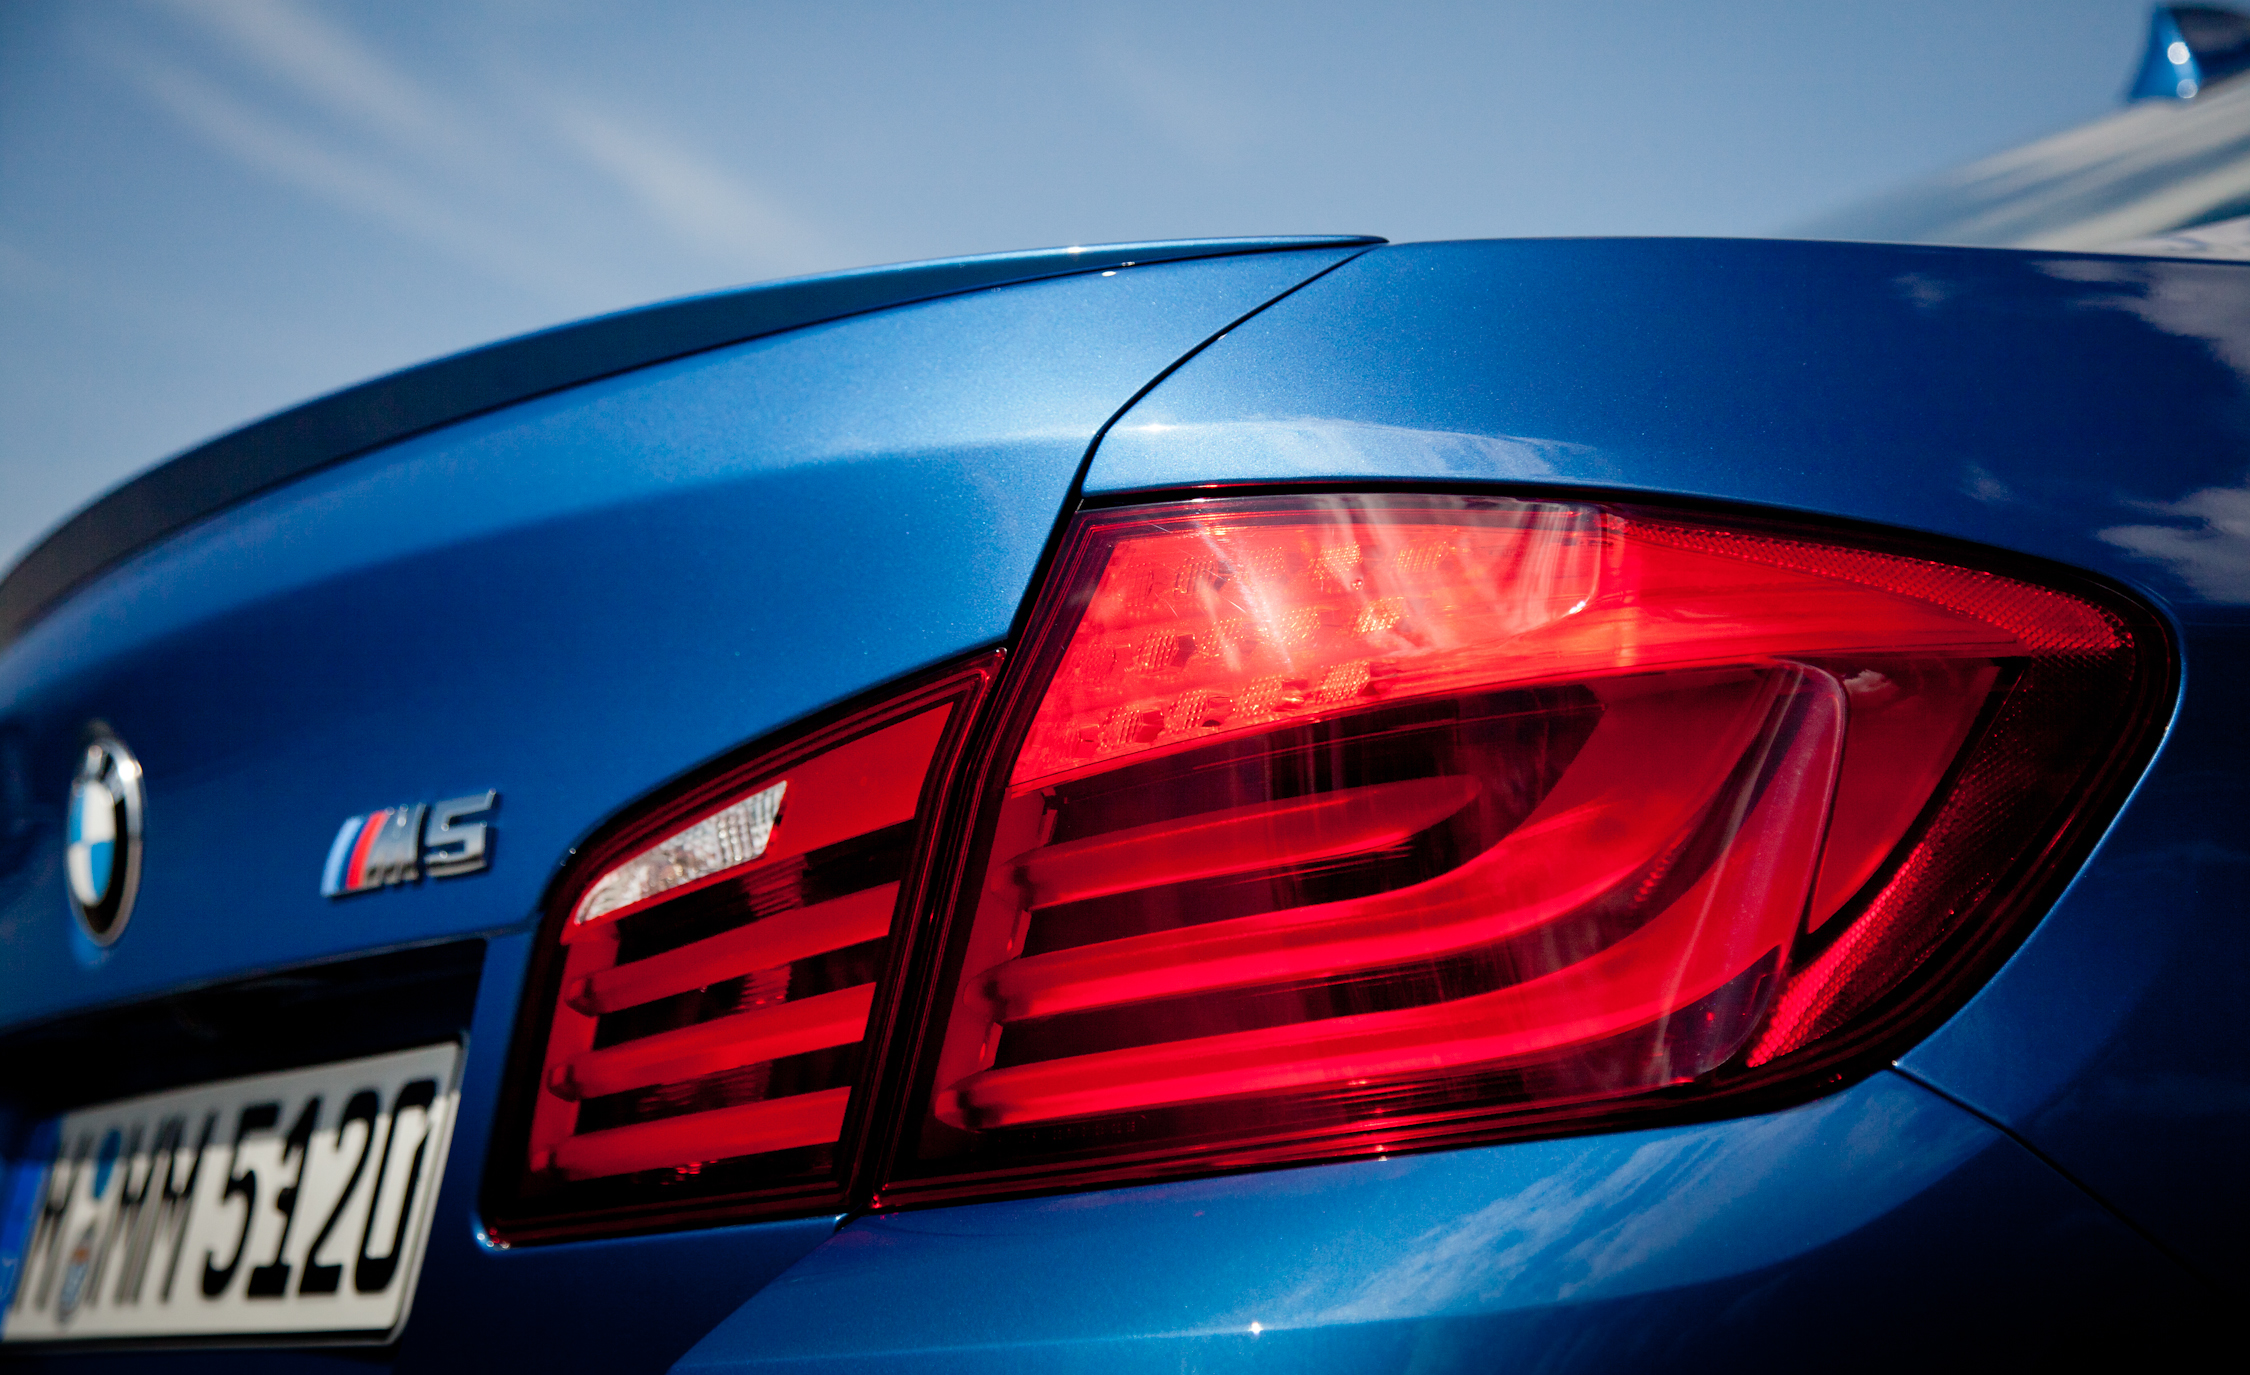 2013 BMW M5 Exterior View Taillight (View 14 of 22)